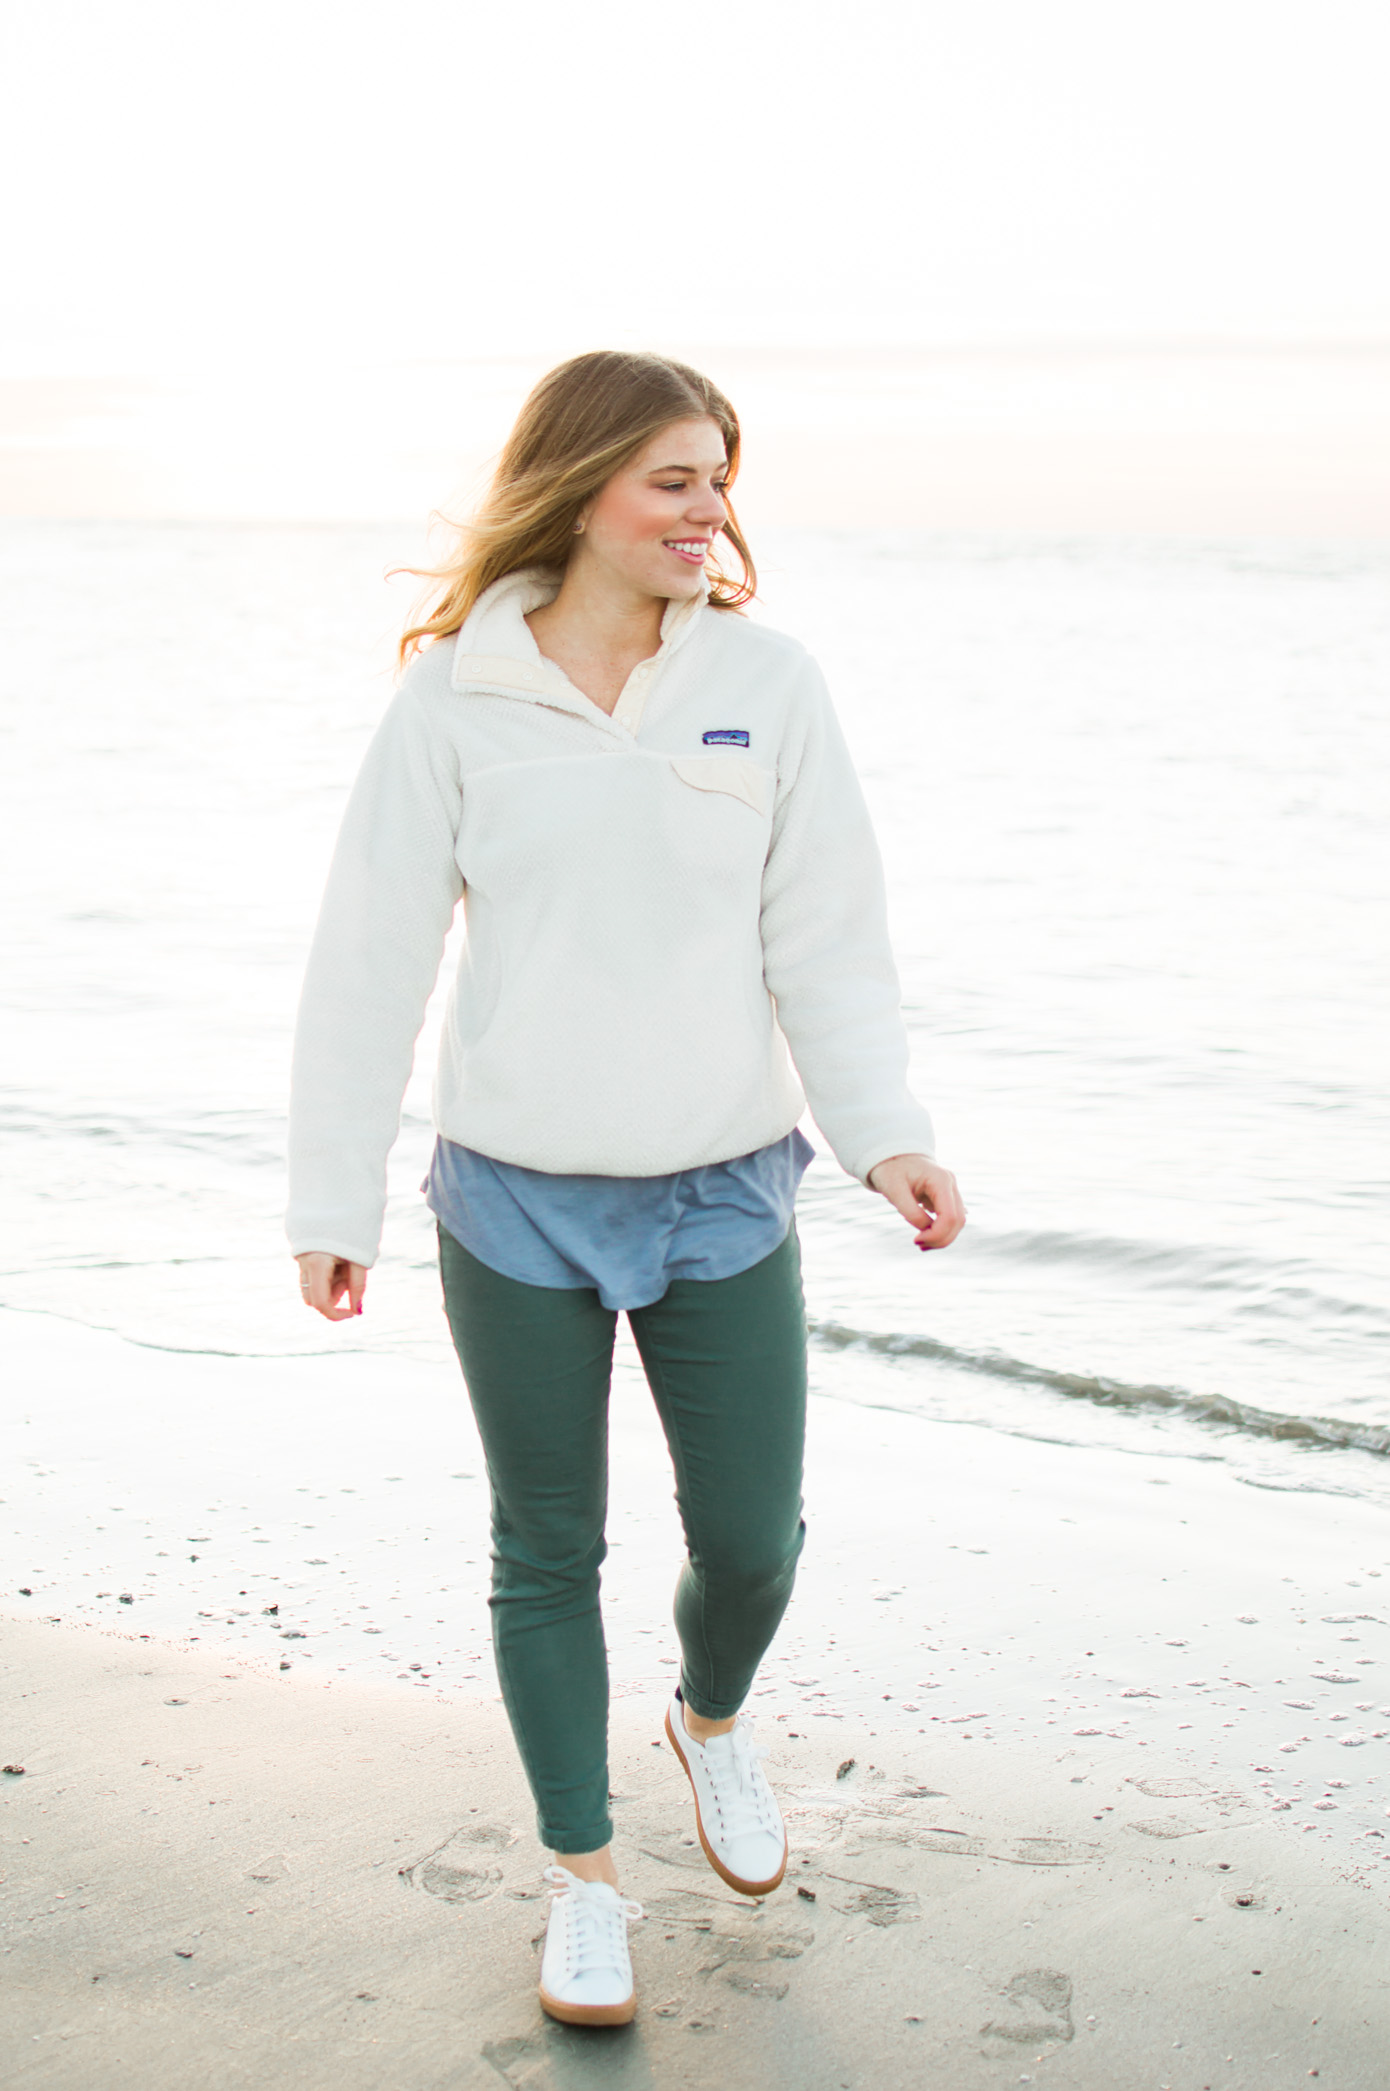 Fall Beach Style | Patagonia Pullover | Louella Reese Life & Style Blog